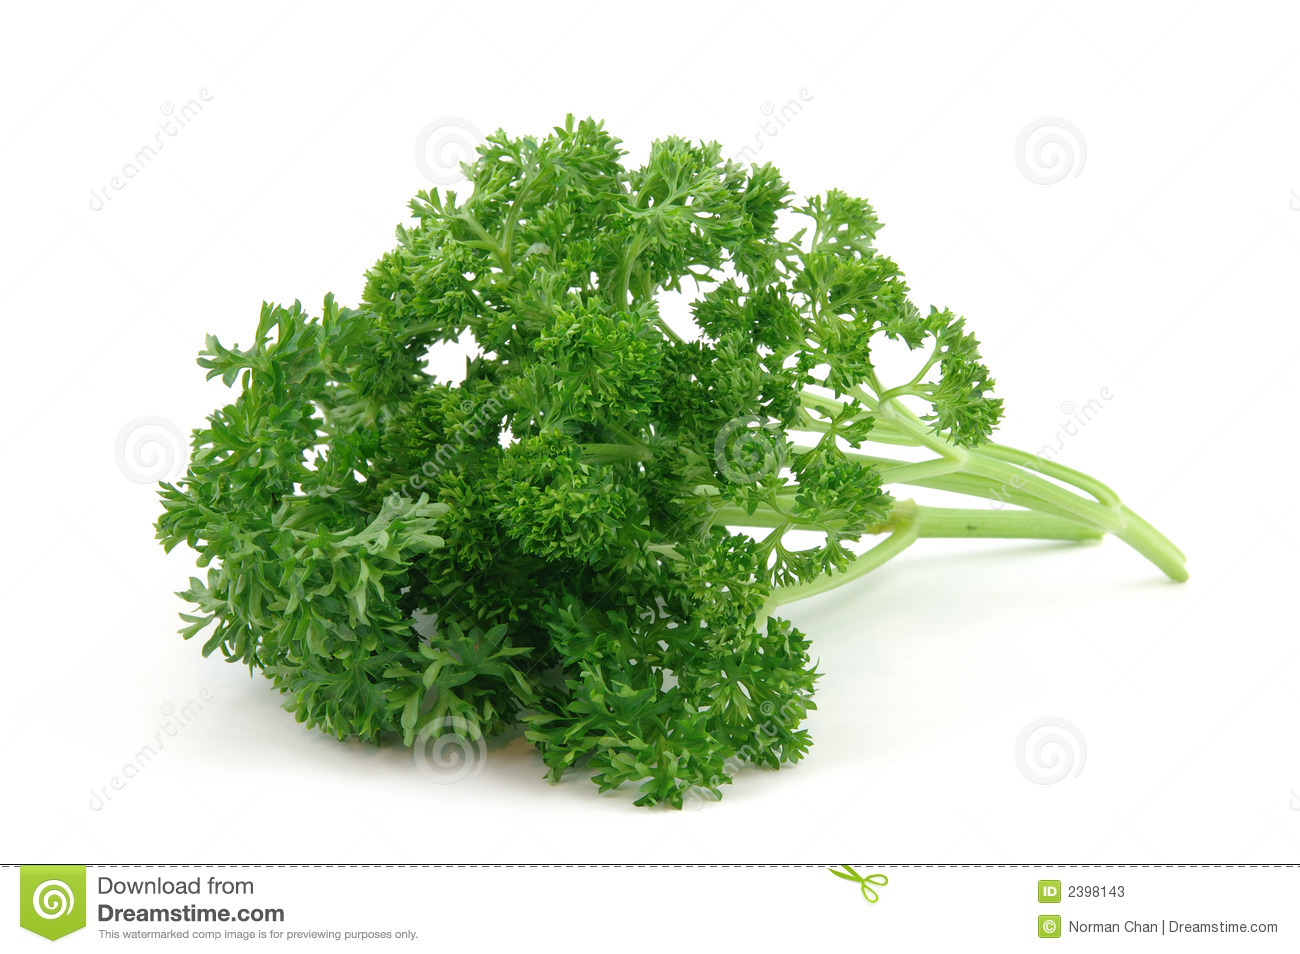 What does dill look like